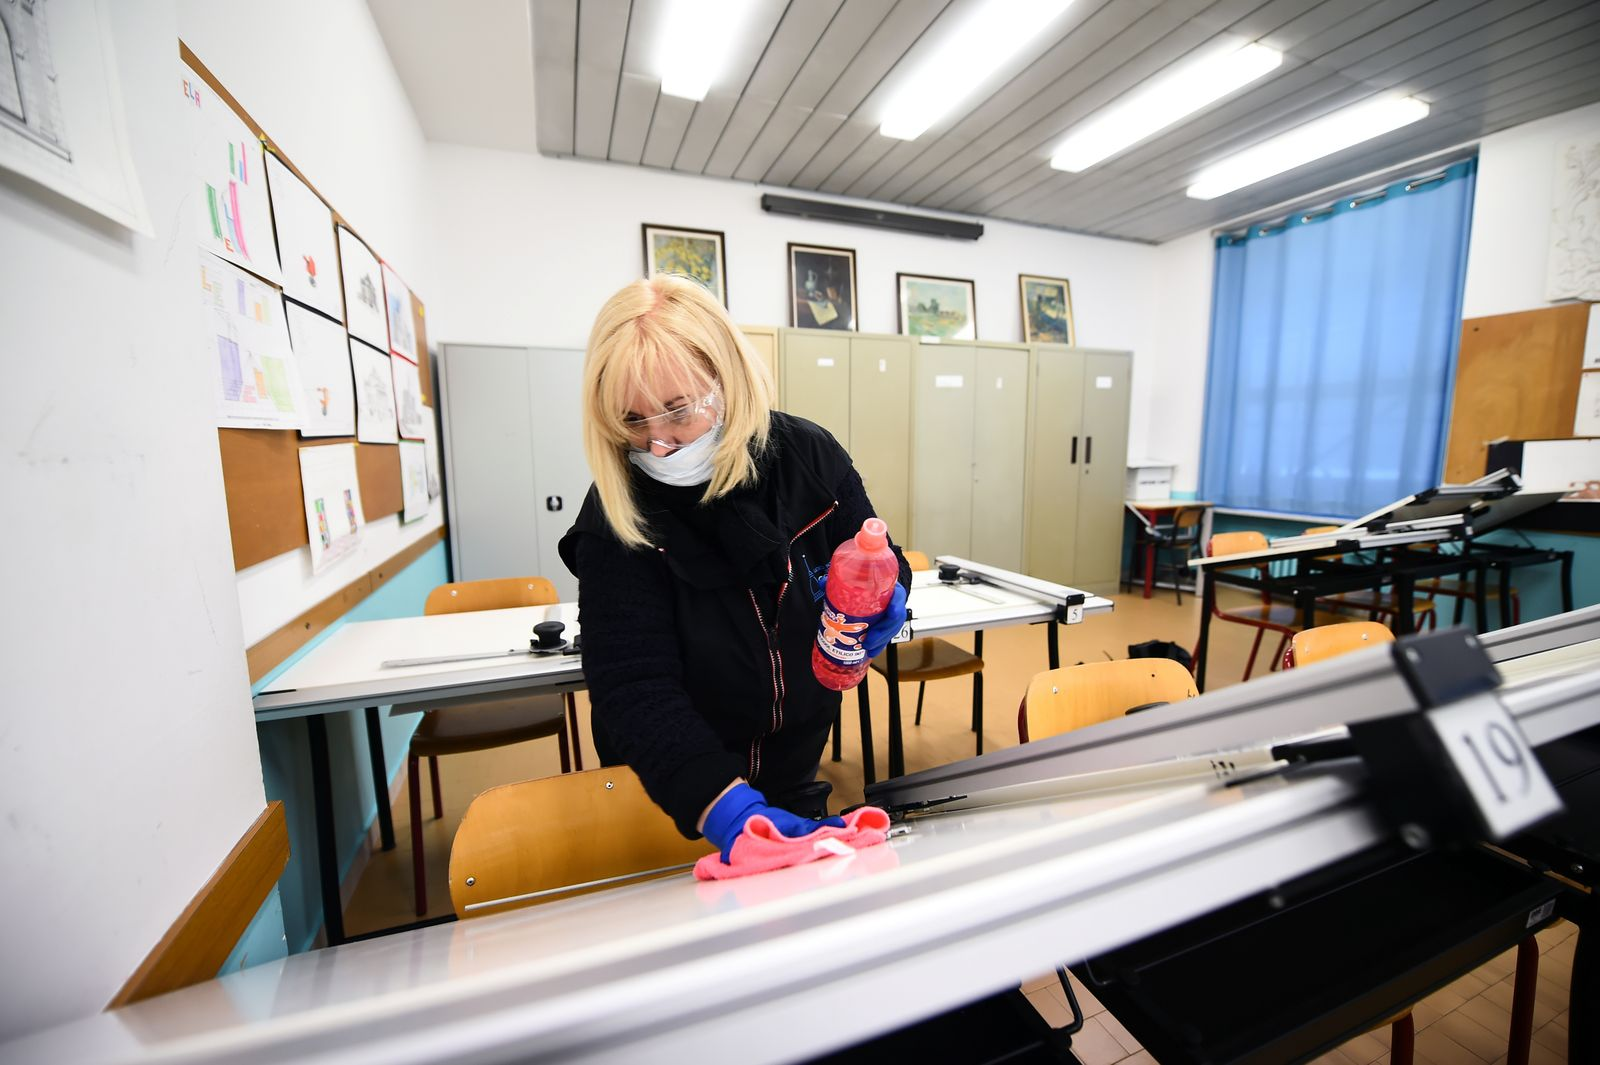 A cleaner sanitises a classroom at the Piero Gobetti high school in Turin